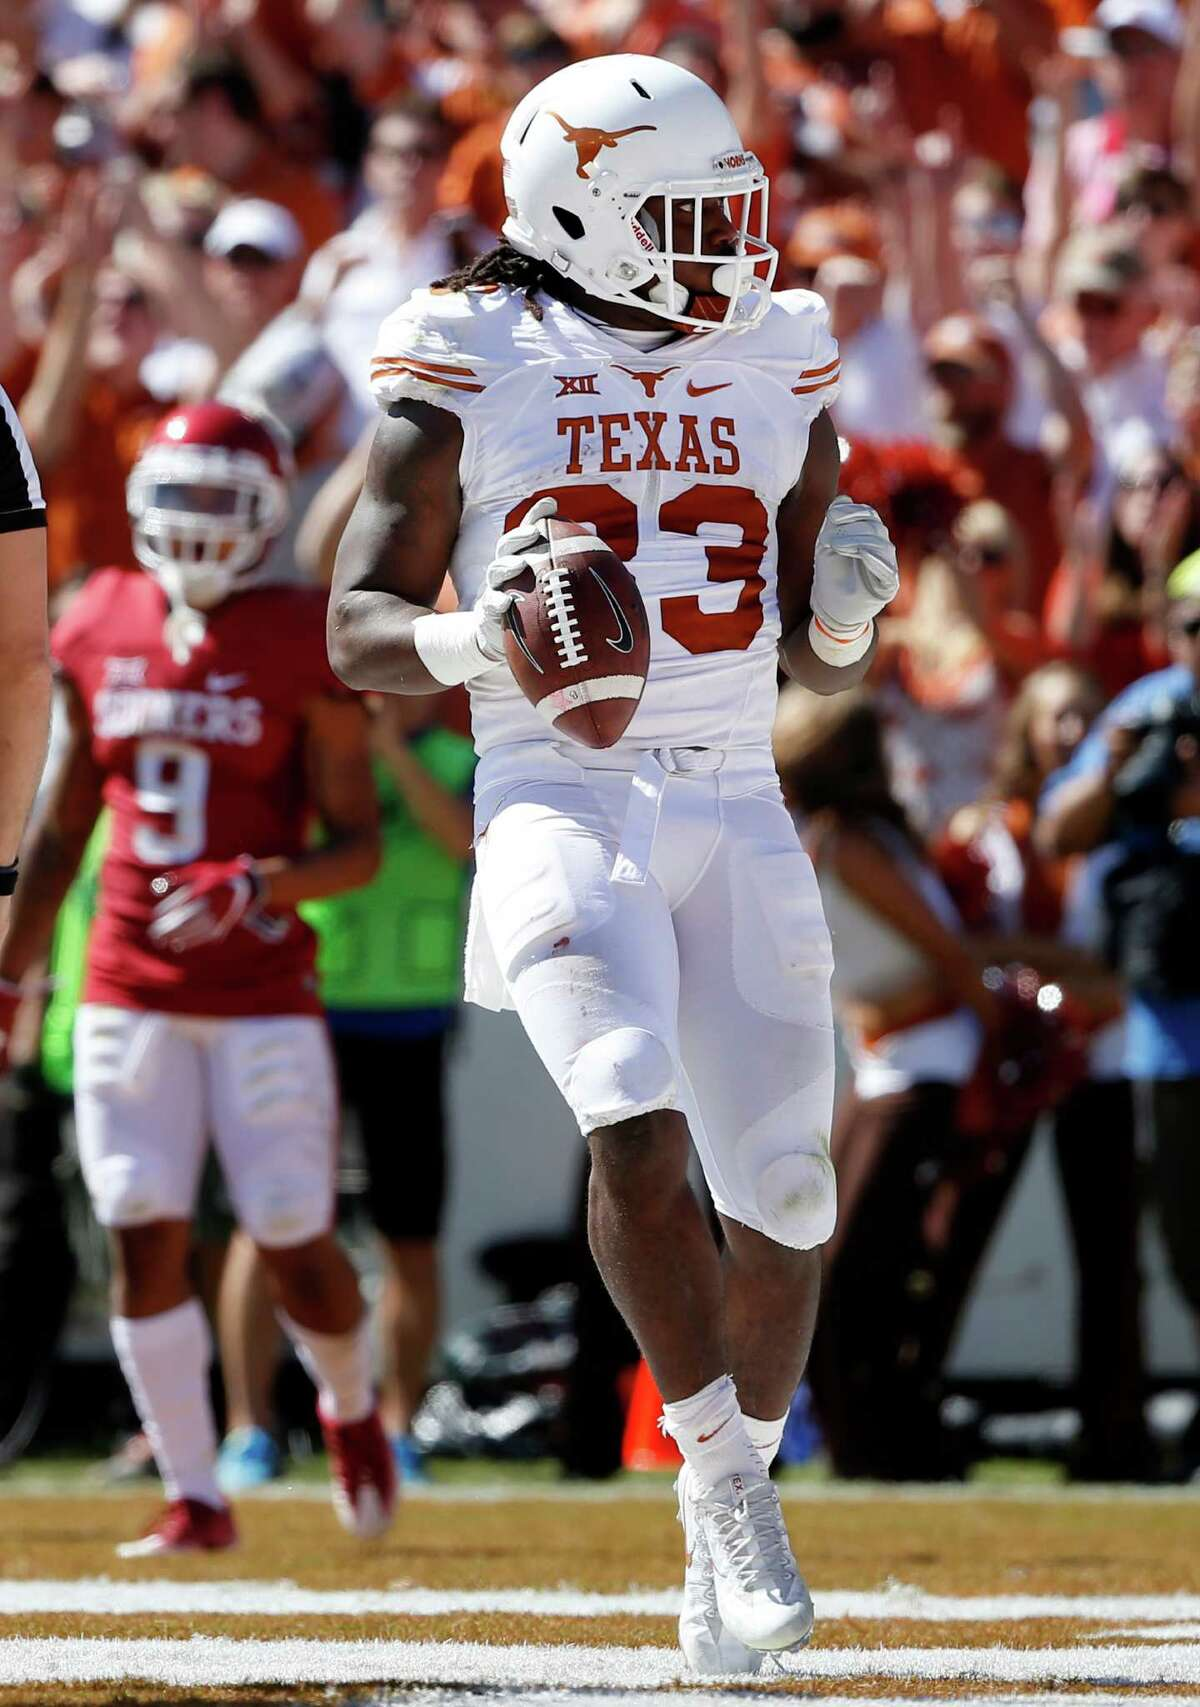 Texas running back D'Onta Foreman scores a touch-down against Oklahoma as part of a 159-yard game that was overshadowed by another poor defensive performance that led to a third consecutive loss.